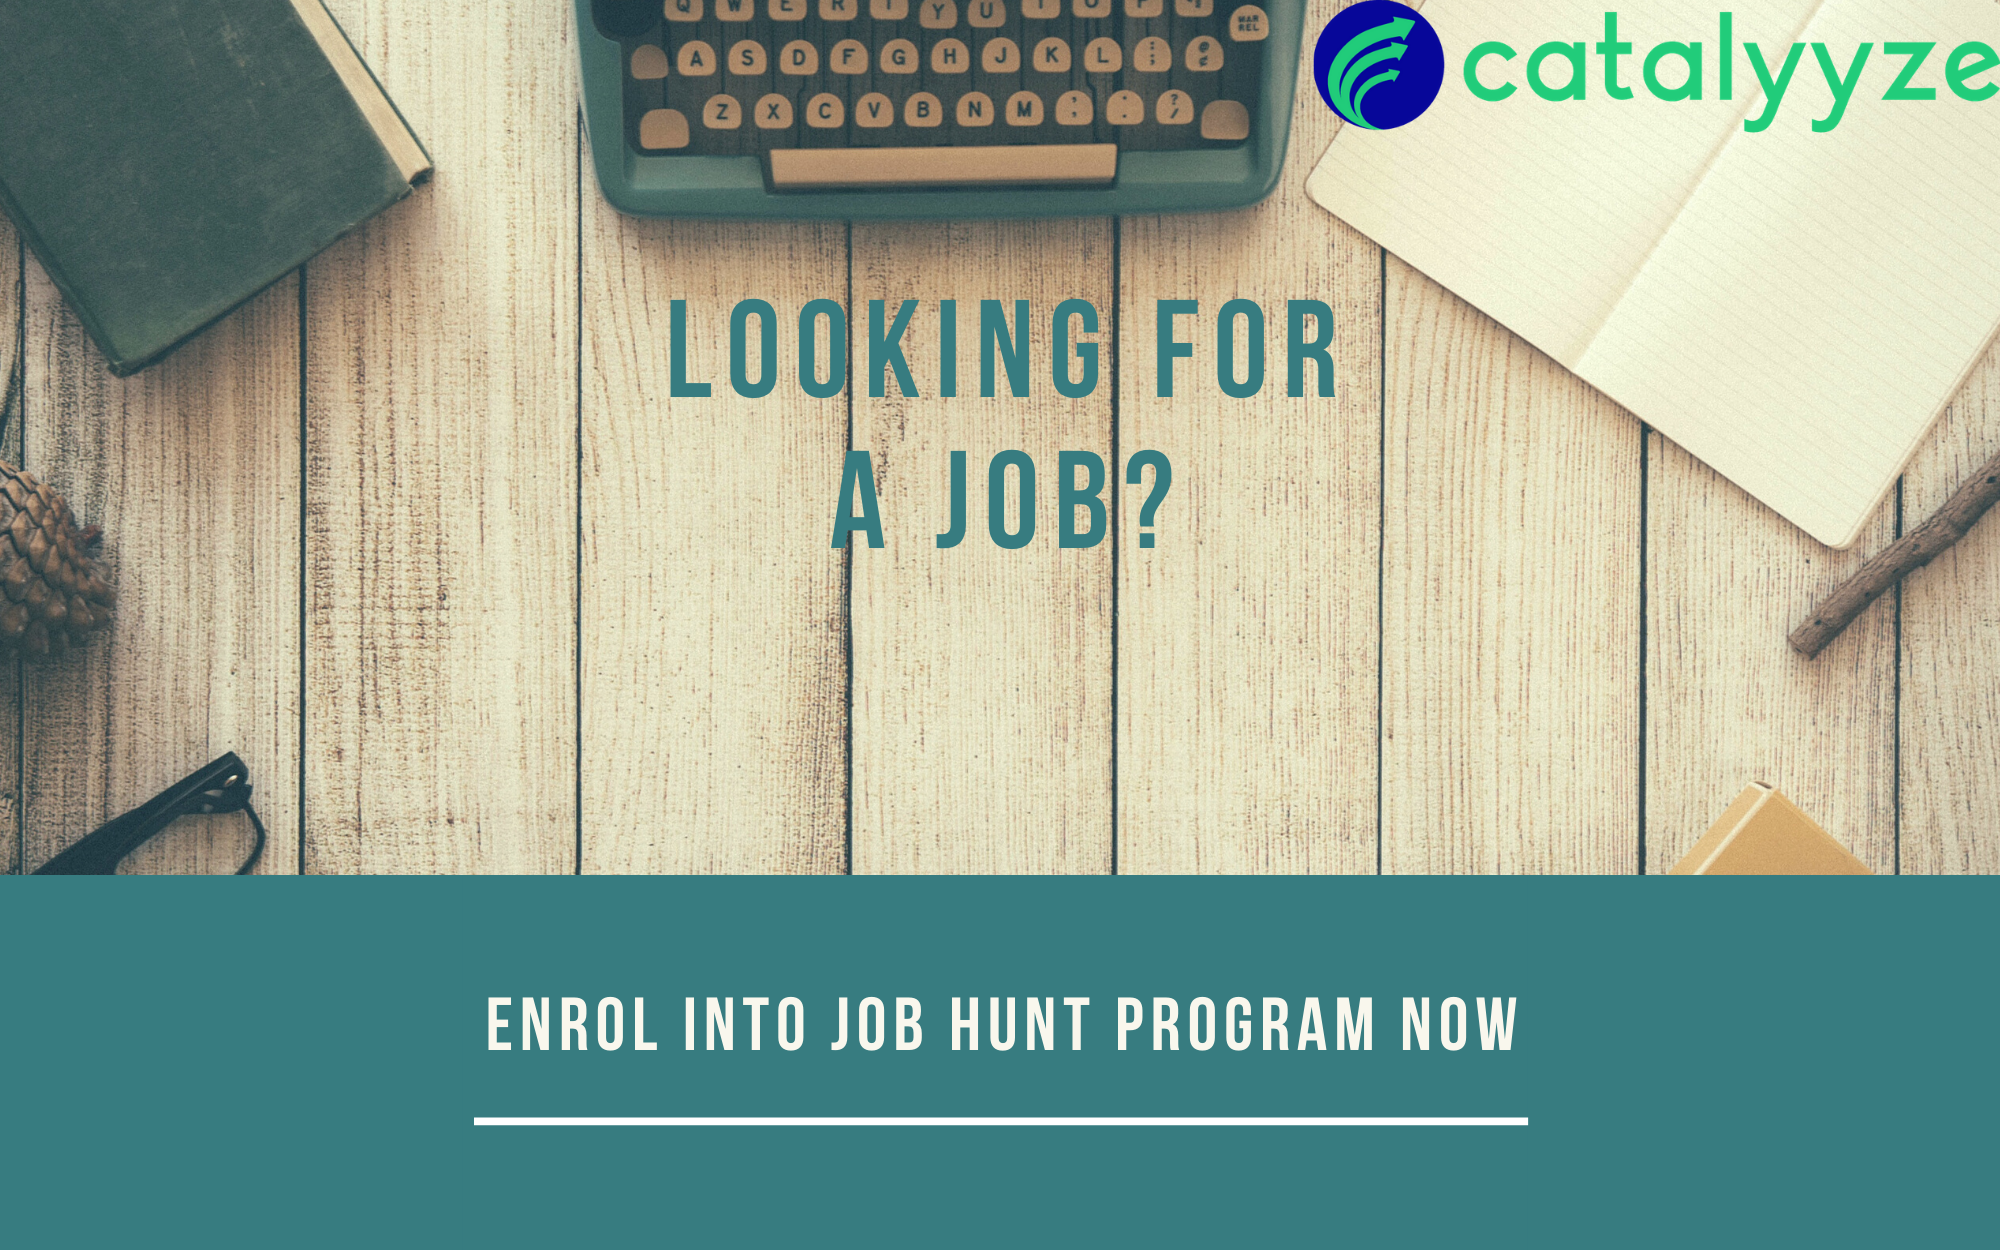 Job hunt program